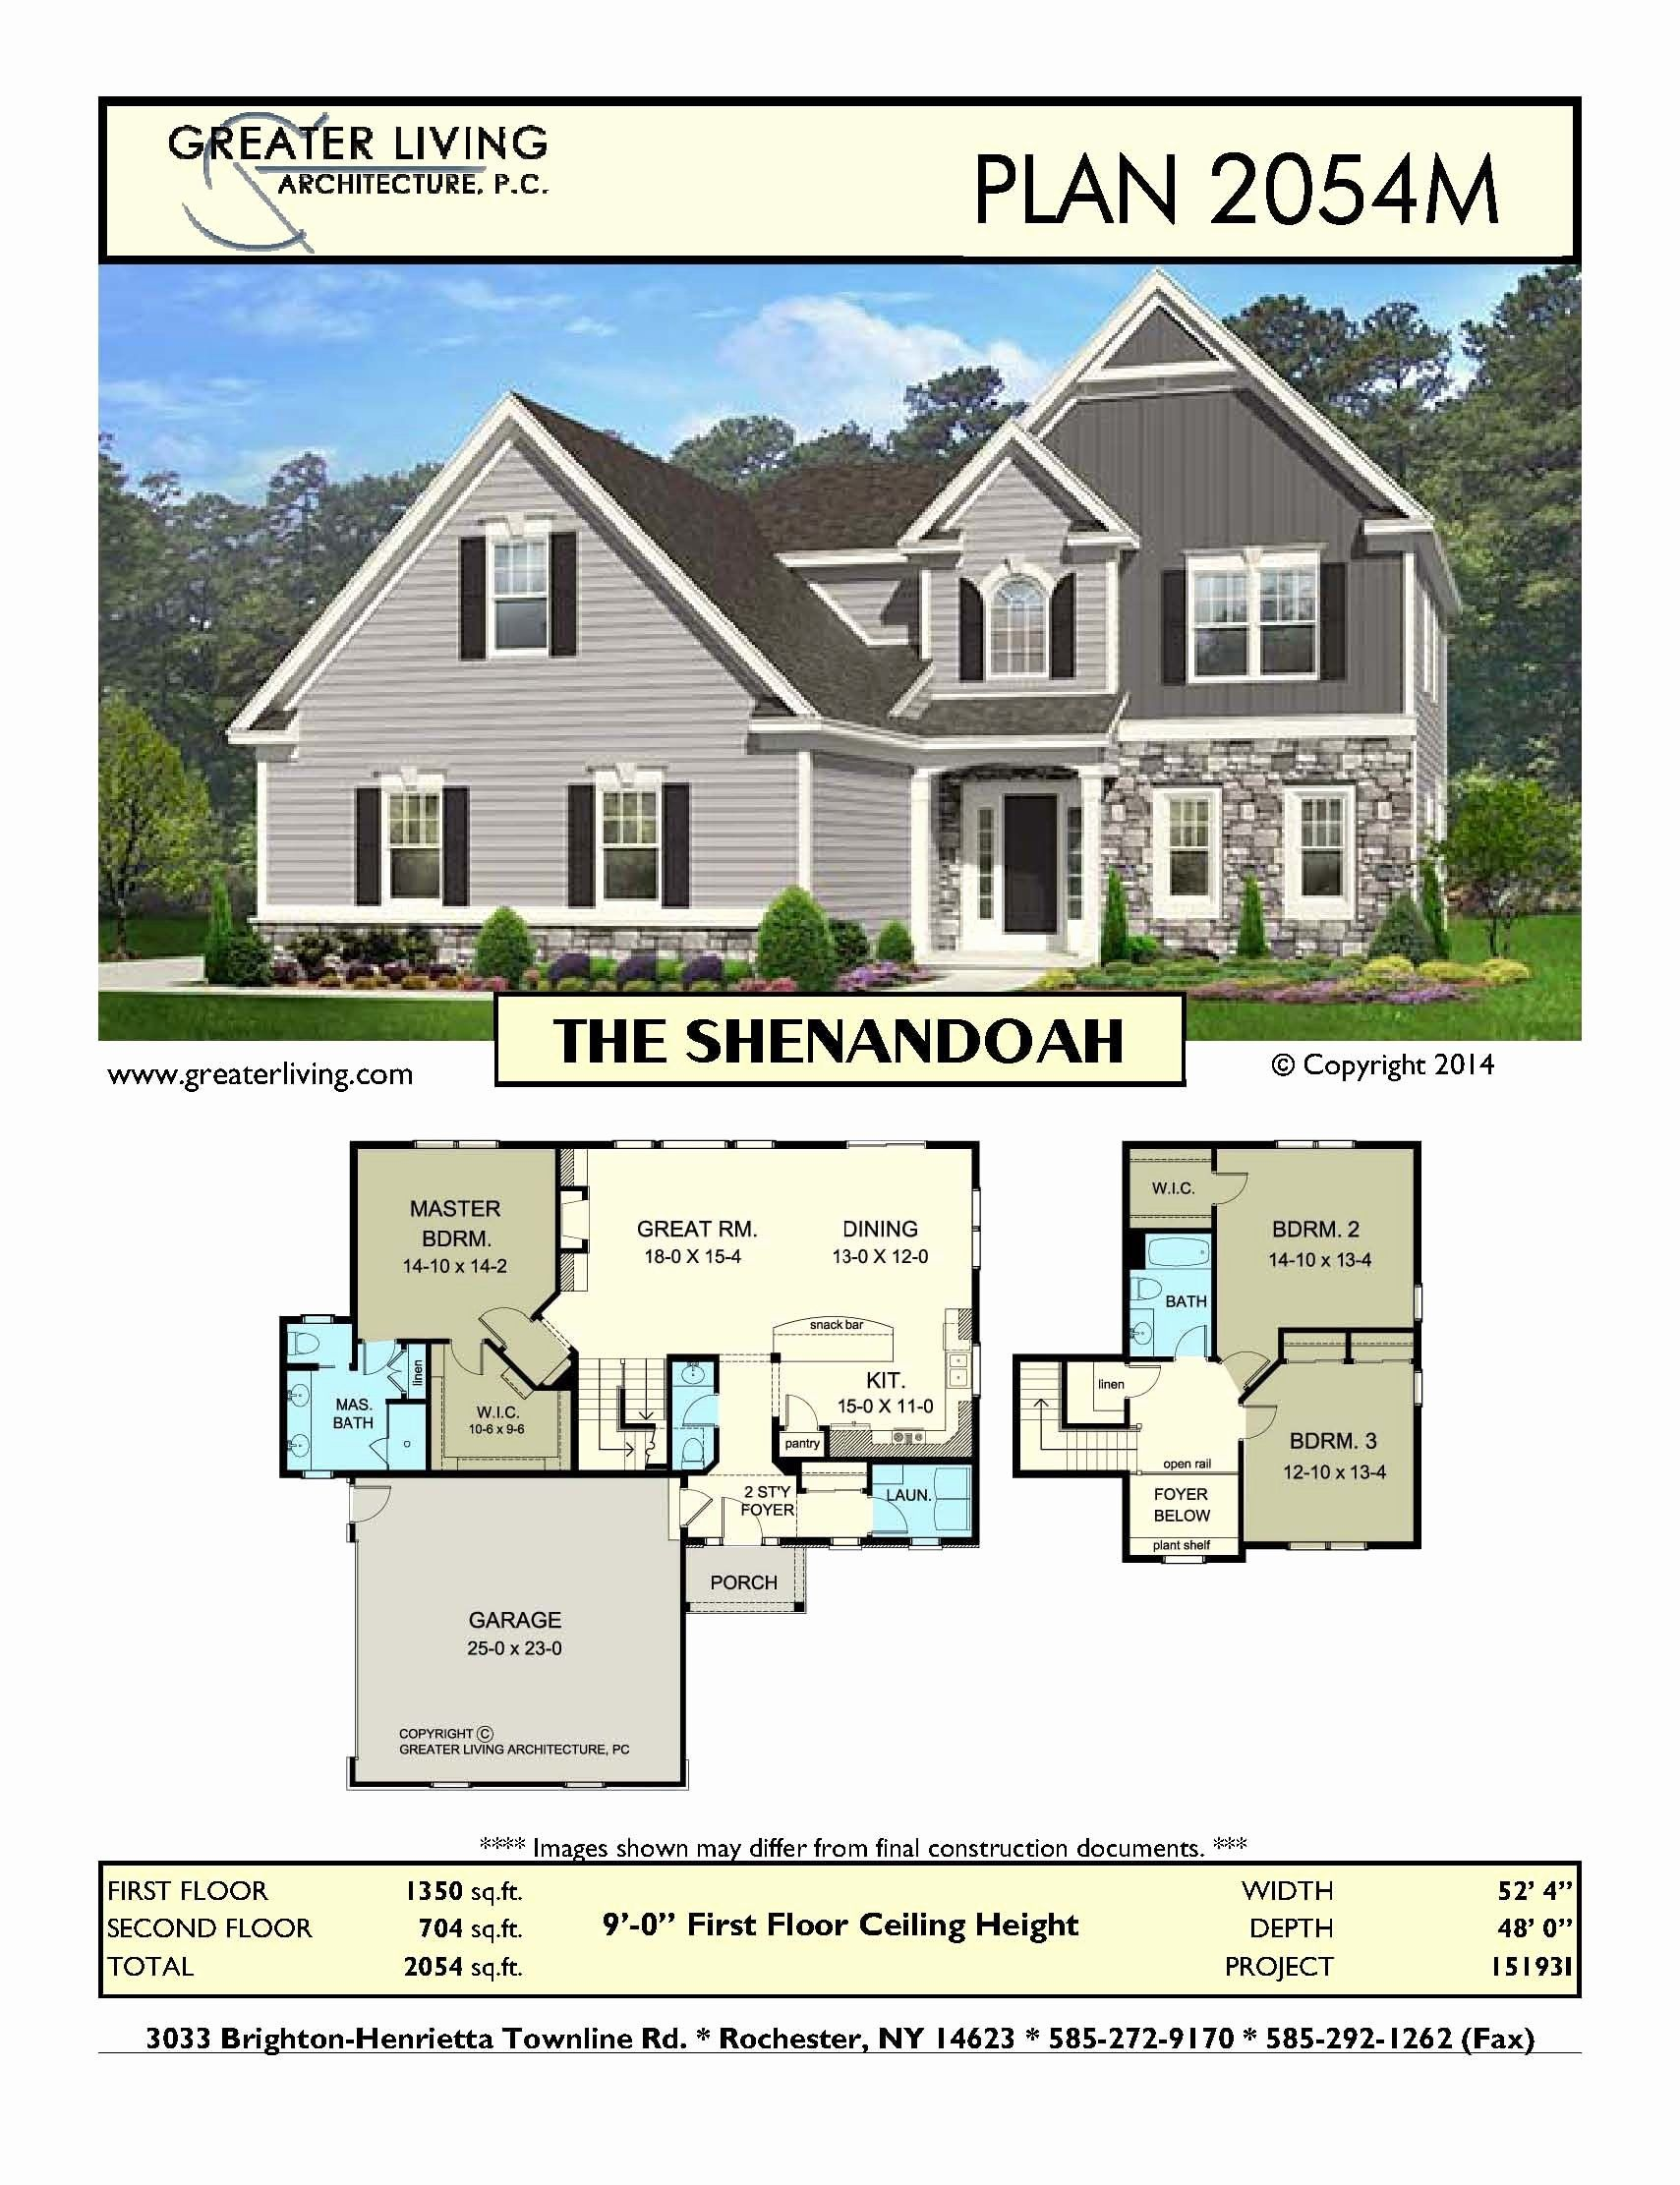 1st Floor Master House Plans Lovely Plan 2054m The Shenandoah House Plans Two Story House Simple Ranch House Plans Craftsman Bungalow House Plans House Plans